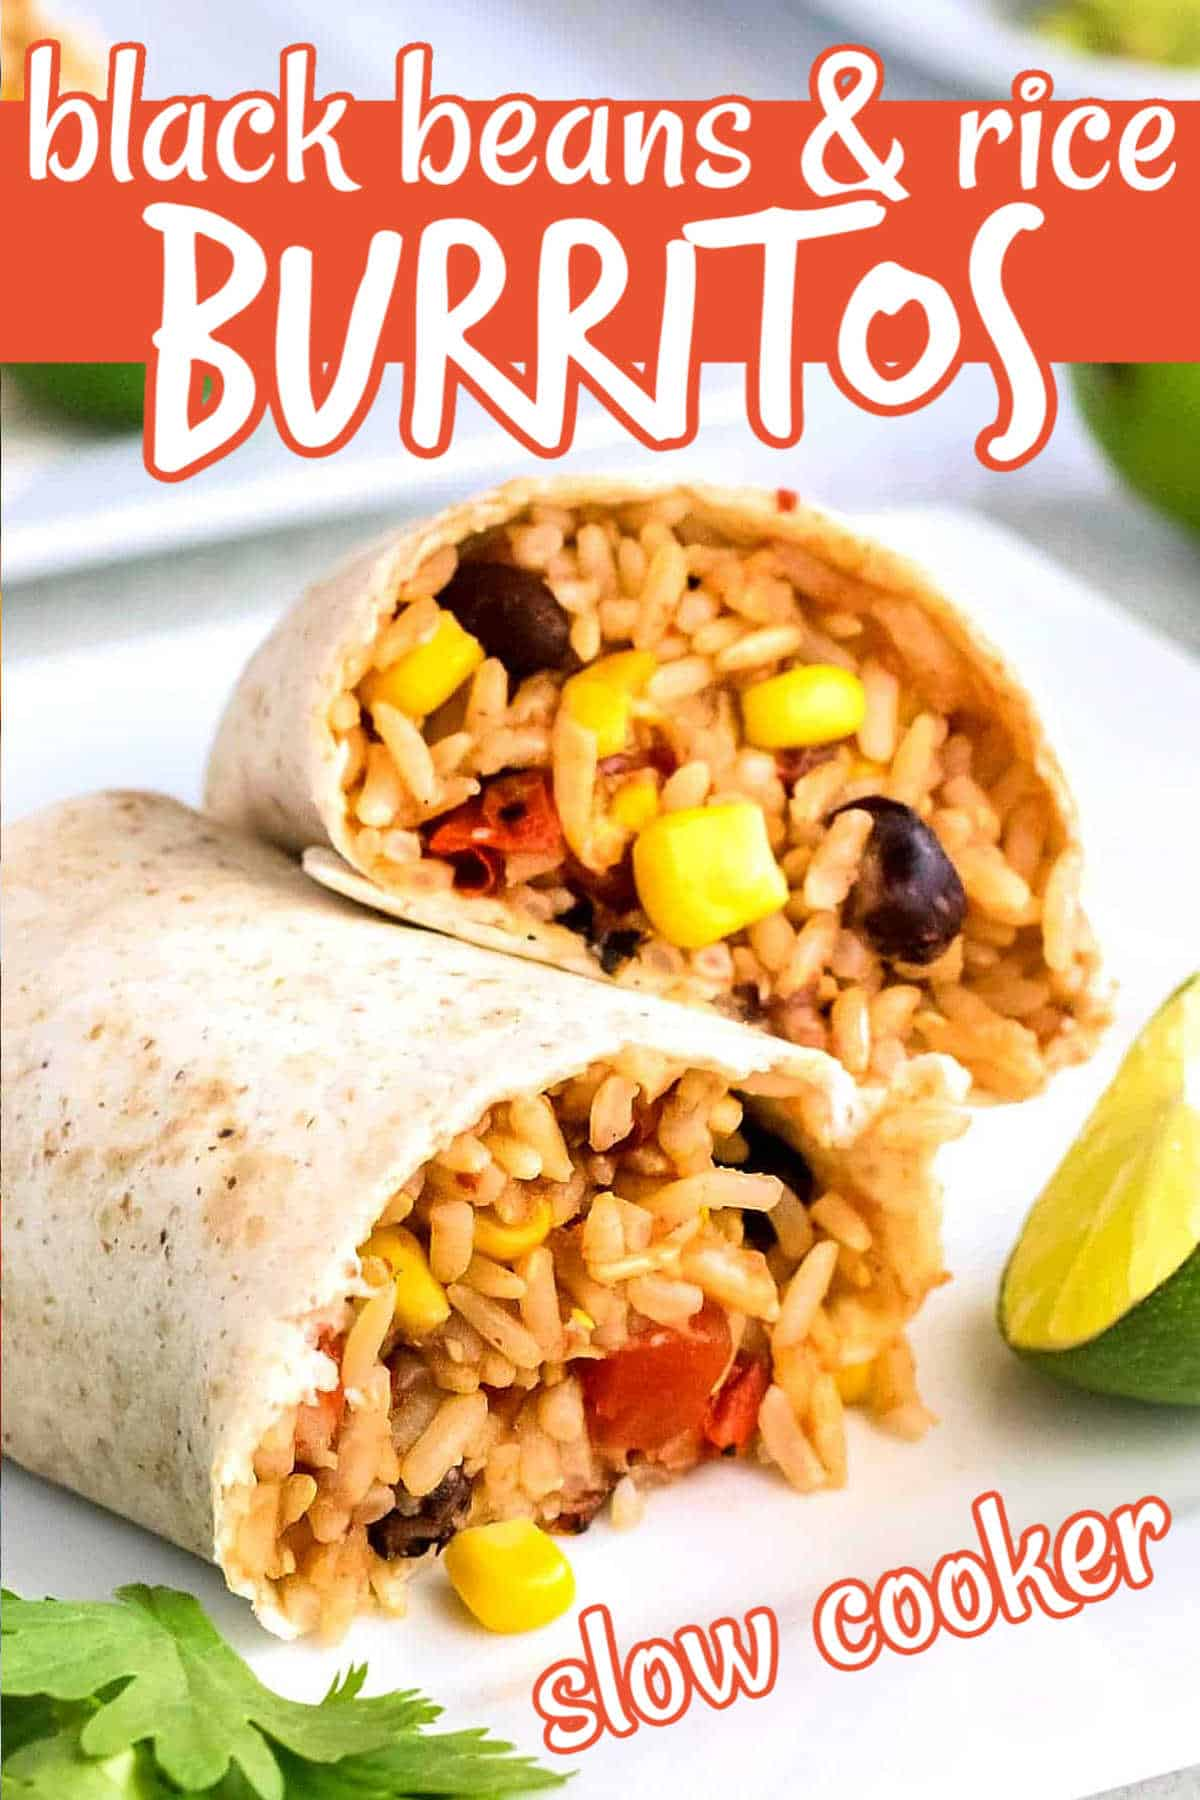 Two burritos are broken open and are overlapping each other to show the filling inside. All is on a white plate with limes and parsley around.